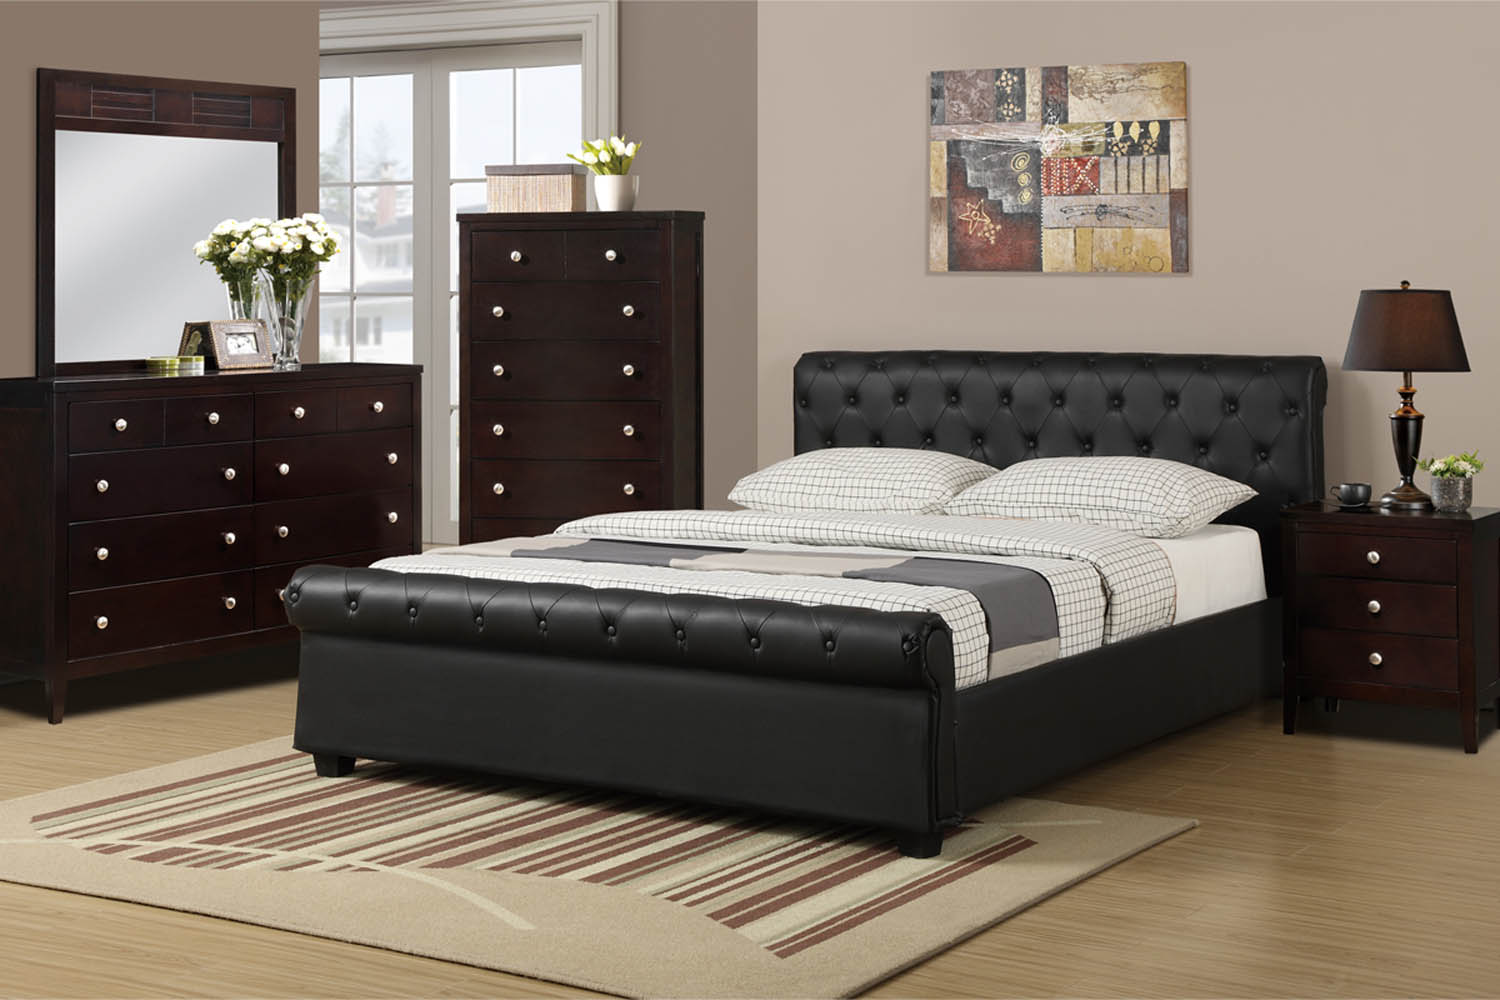 queen black faux leather bed frame. Black Bedroom Furniture Sets. Home Design Ideas